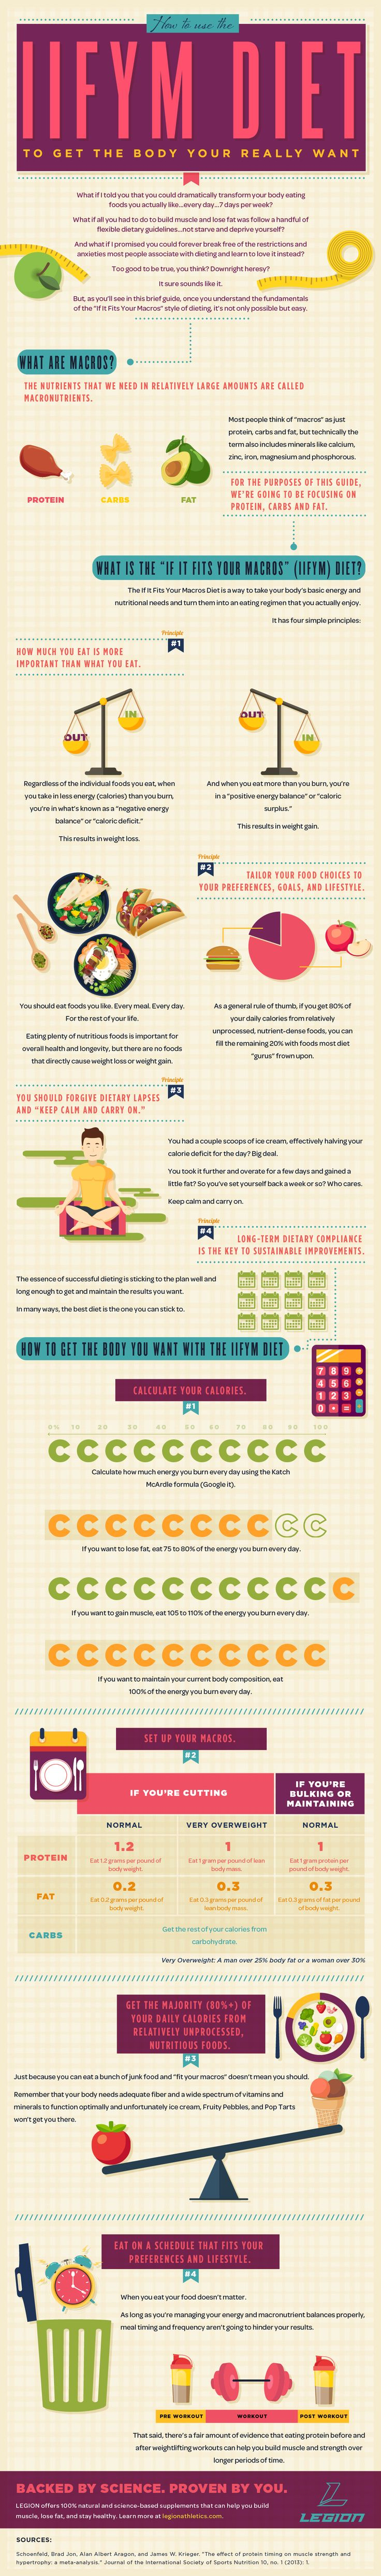 [INFOGRAPHIC] How to Use the IIFYM Diet to Get Fit While Eating Cookies my personal favorite because it's not a diet, nothing is off limits, and it can be done for life.